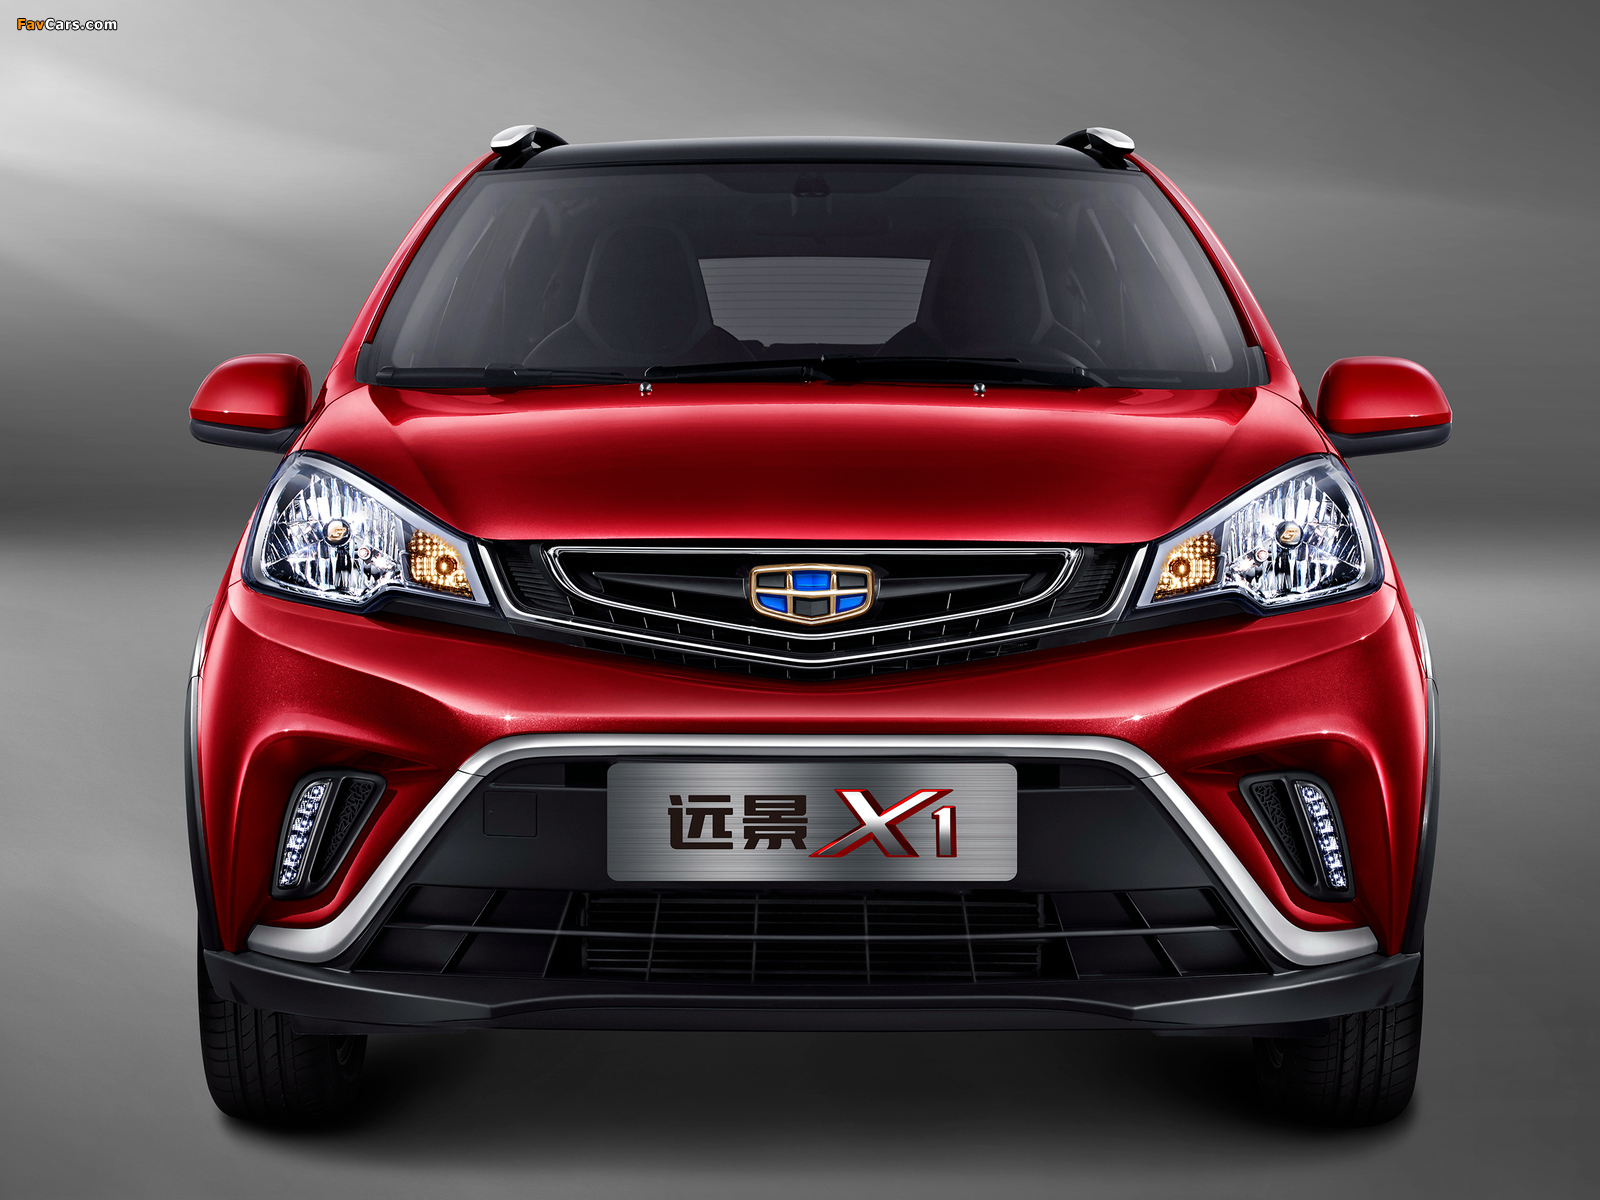 Geely Vision X1 2017 wallpapers (1600 x 1200)